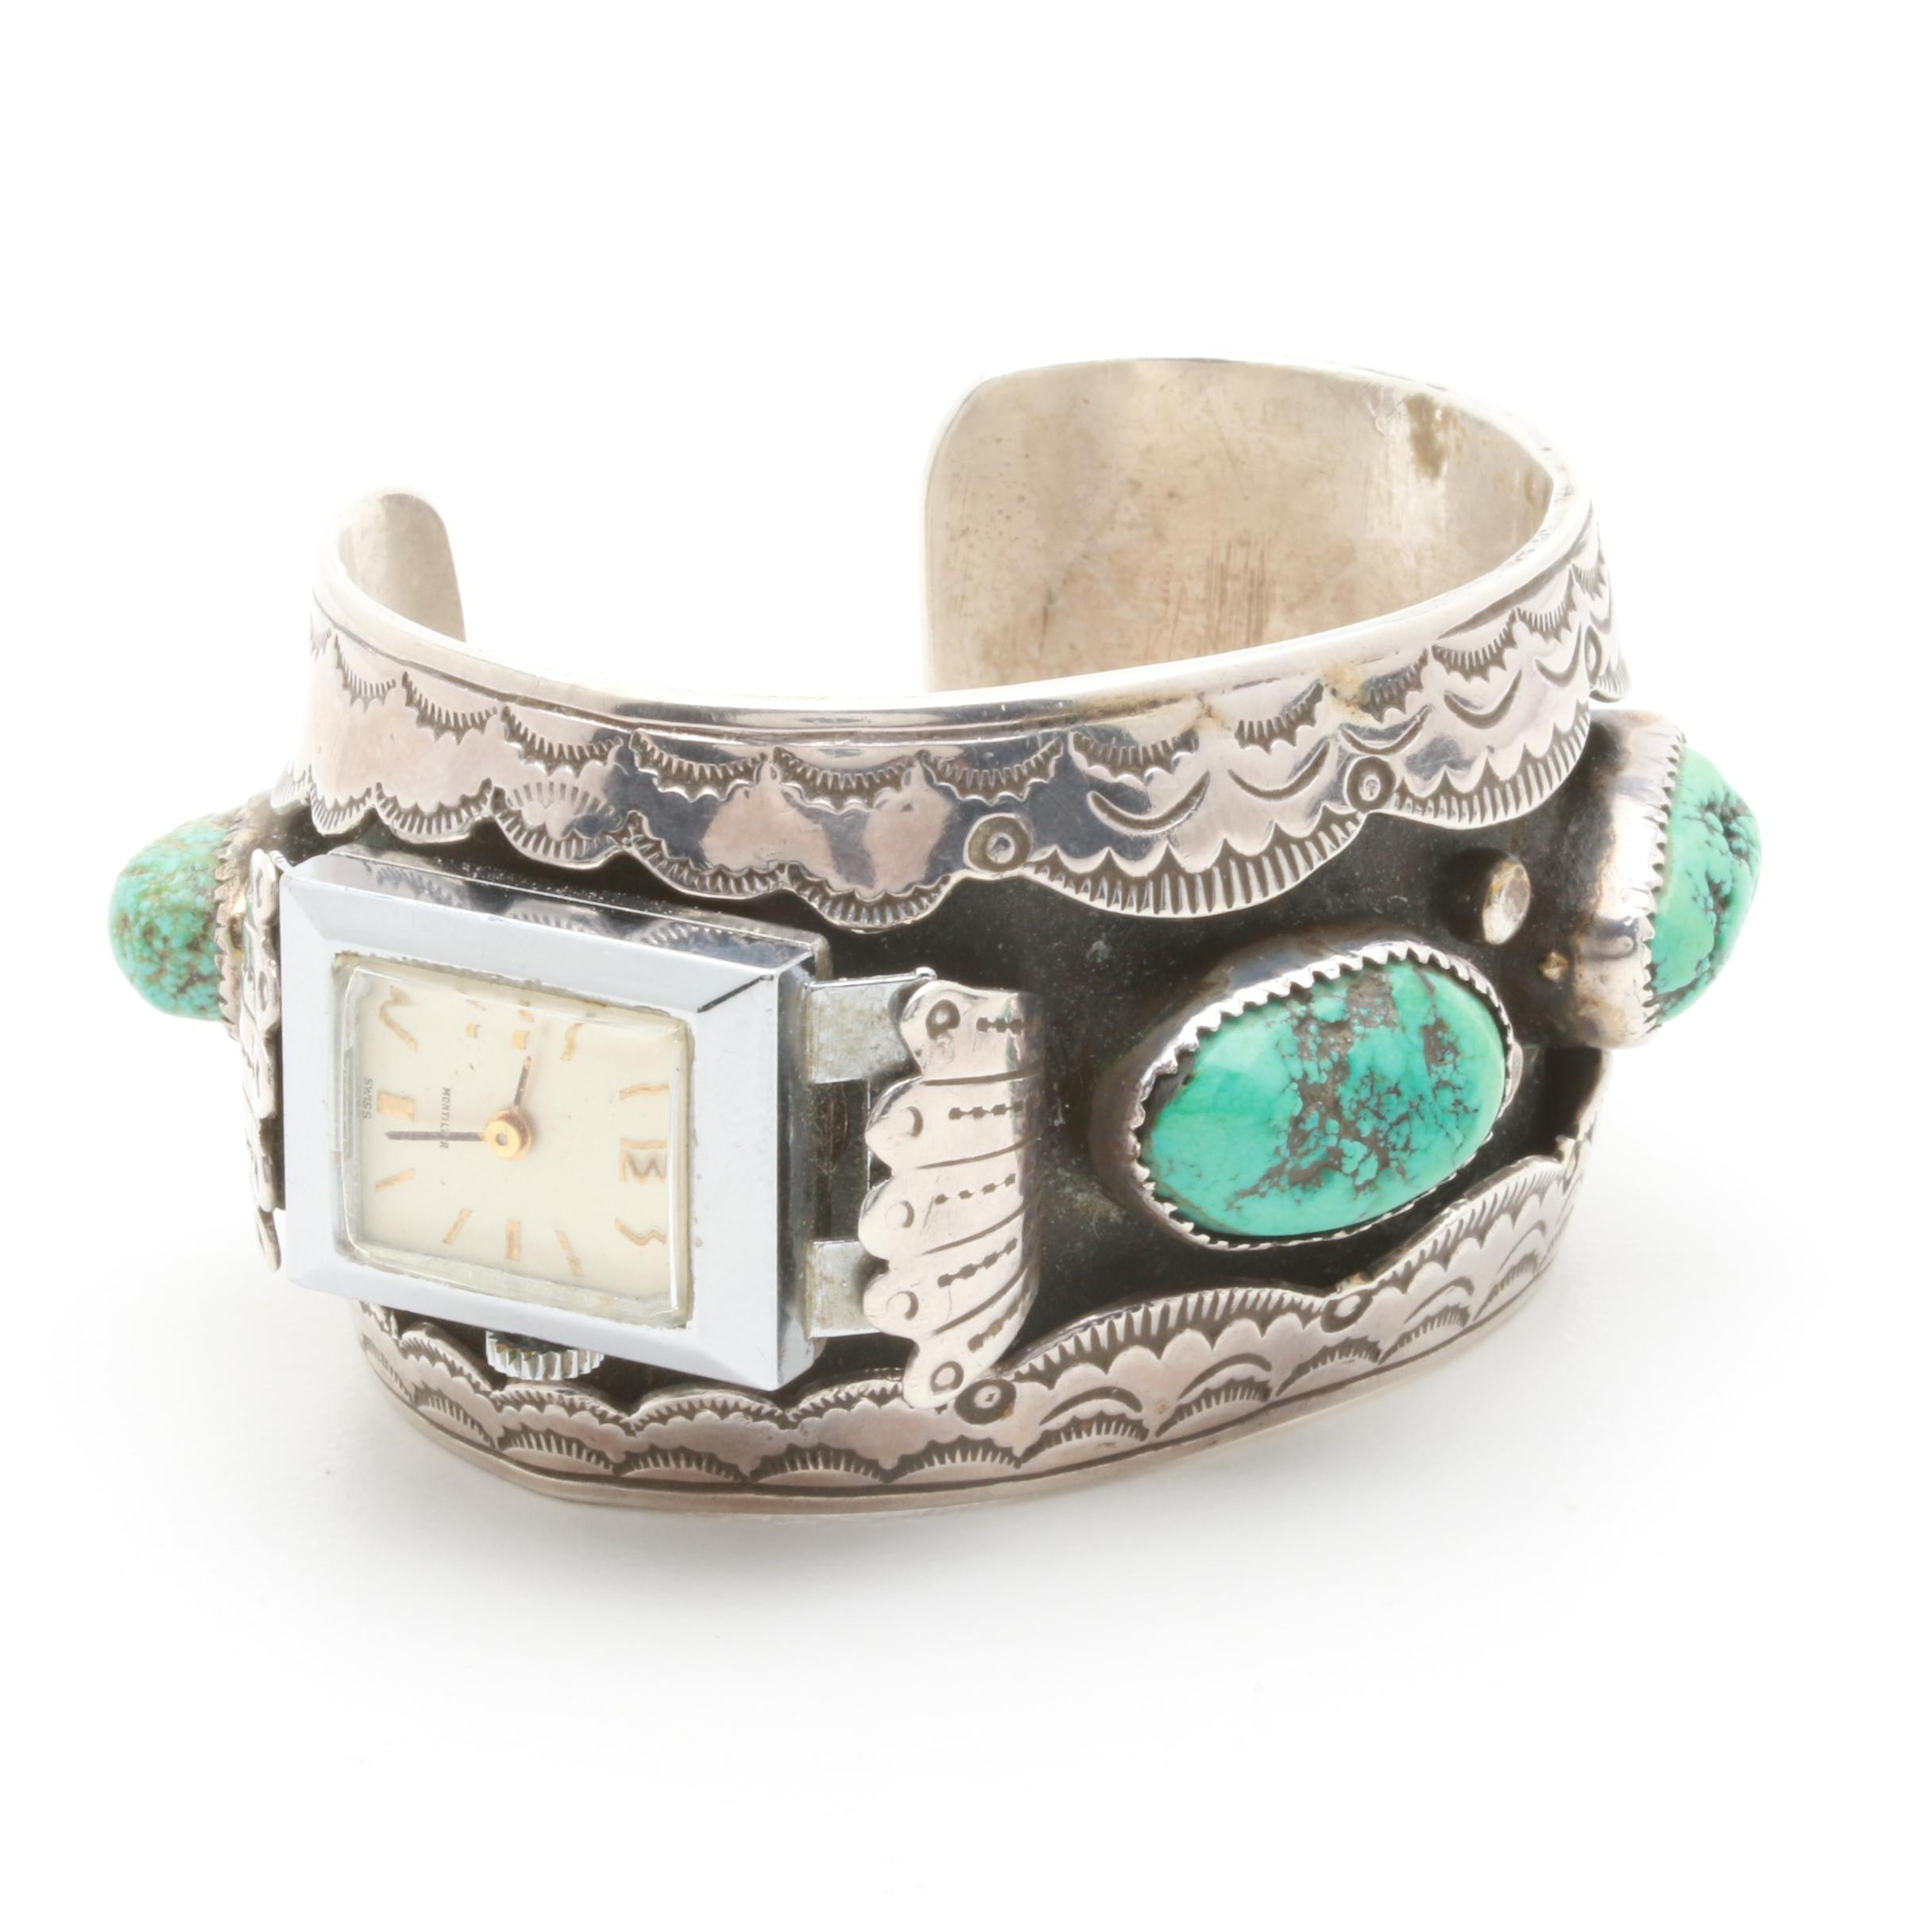 Chester Gverro Najavo Diné Sterling Silver Turquoise Watch Cuff Bracelet